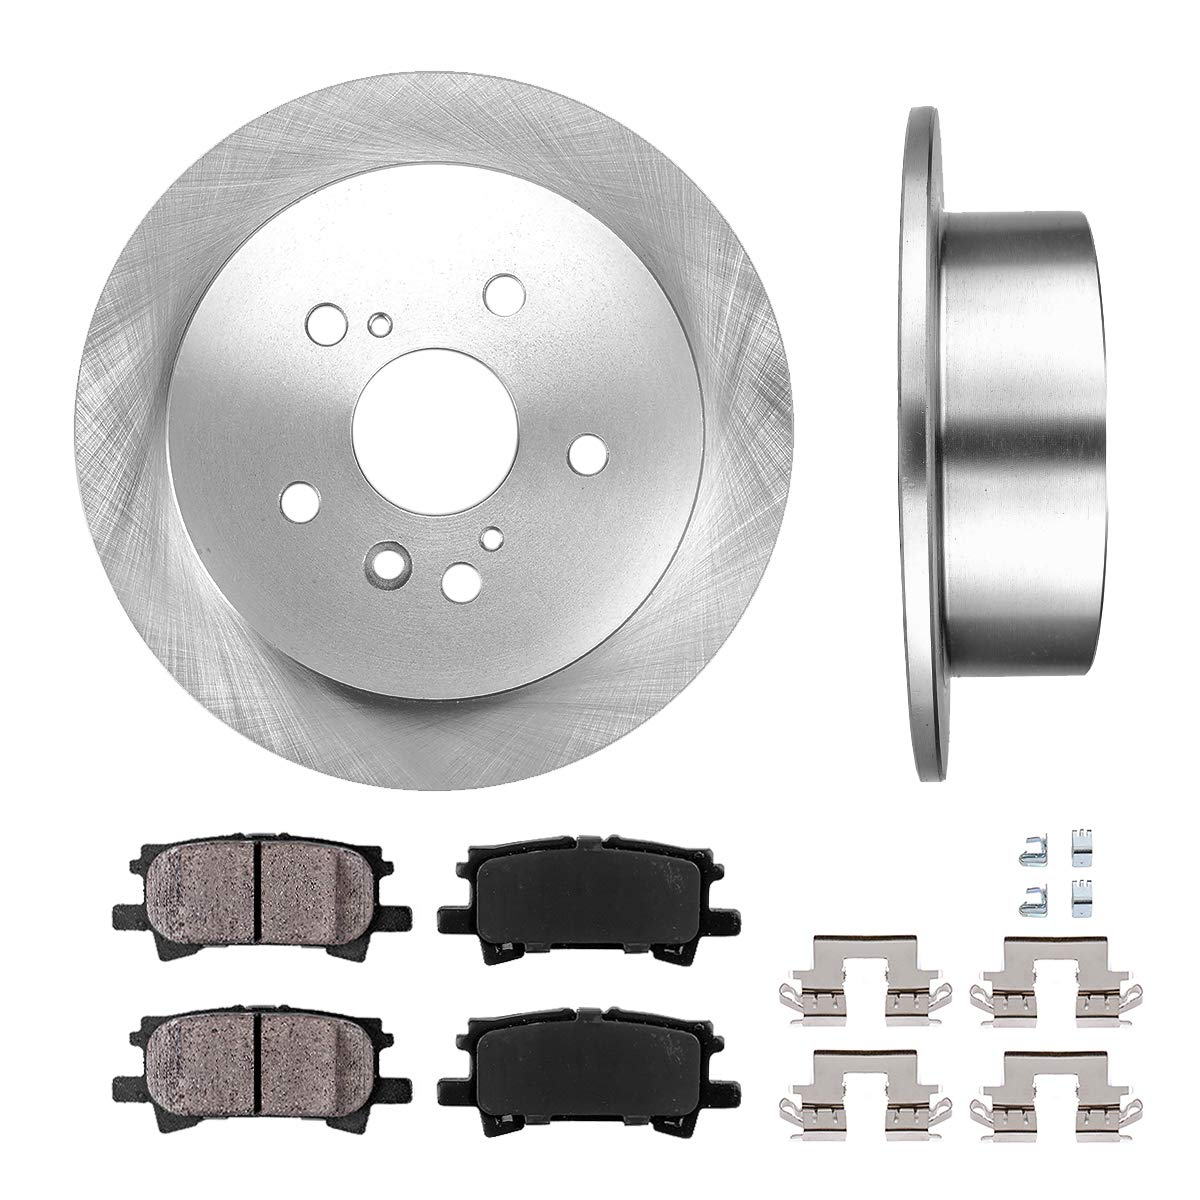 Front Kit 2 Zinc Plated Cross Drilled /& Slotted Disc Brake Rotors -Combo Brake Kit 5lug 4 Semi-Met Pads